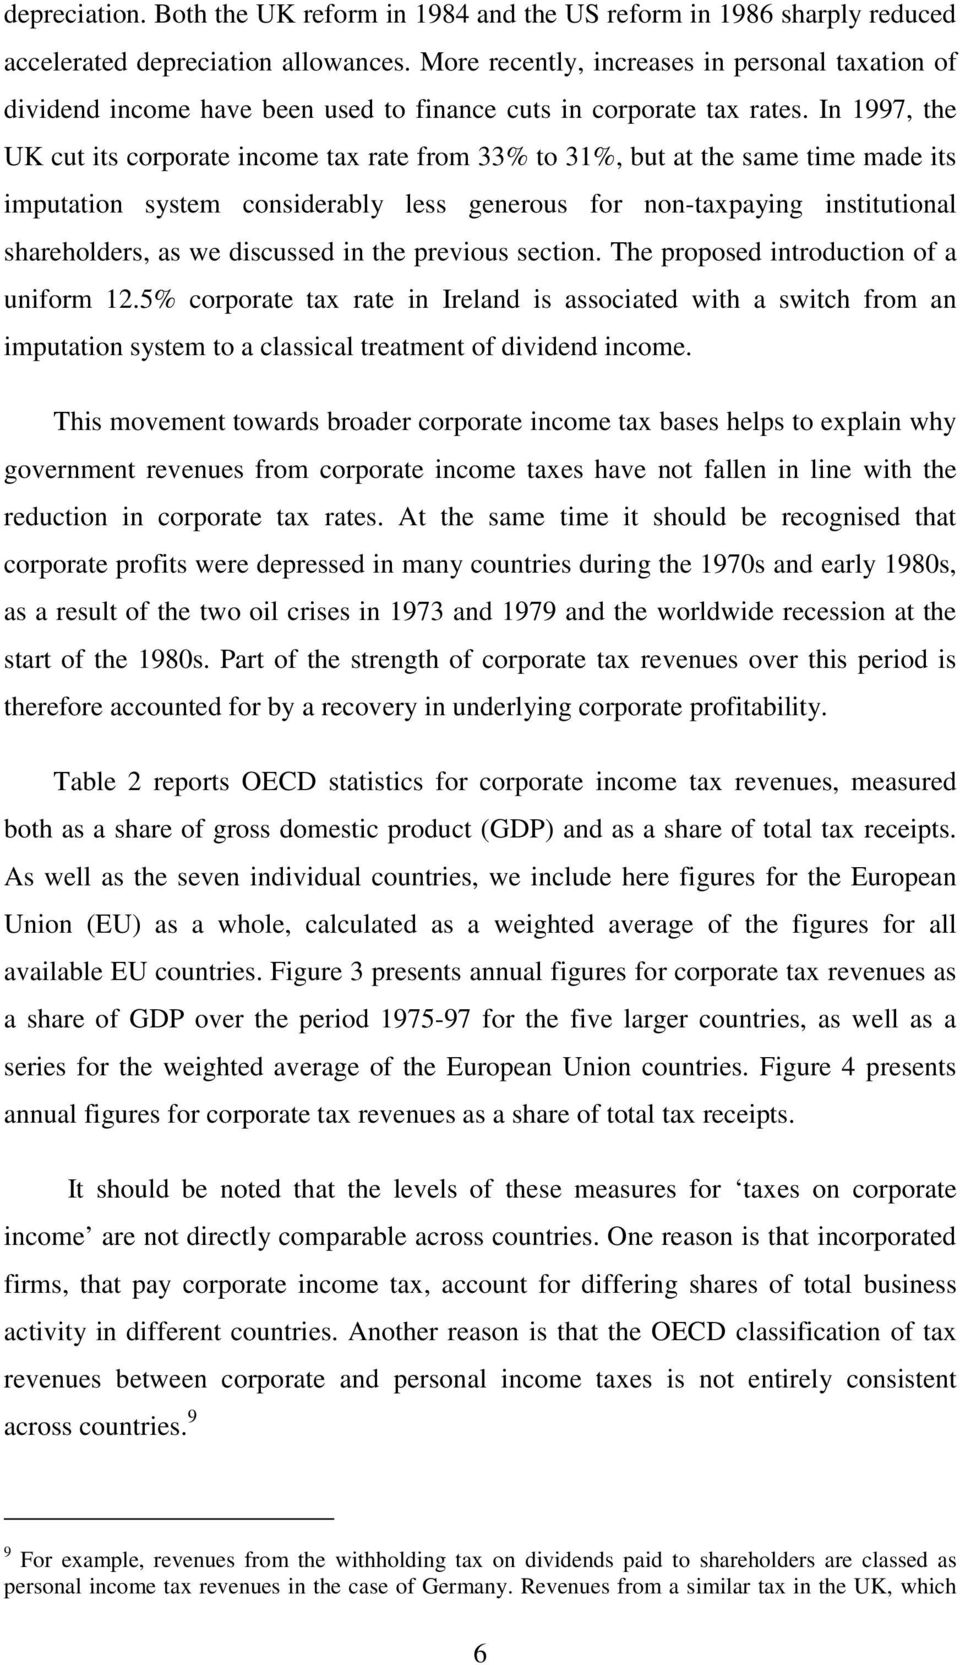 In 1997, the UK cut its corporate income tax rate from 33% to 31%, but at the same time made its imputation system considerably less generous for non-taxpaying institutional shareholders, as we